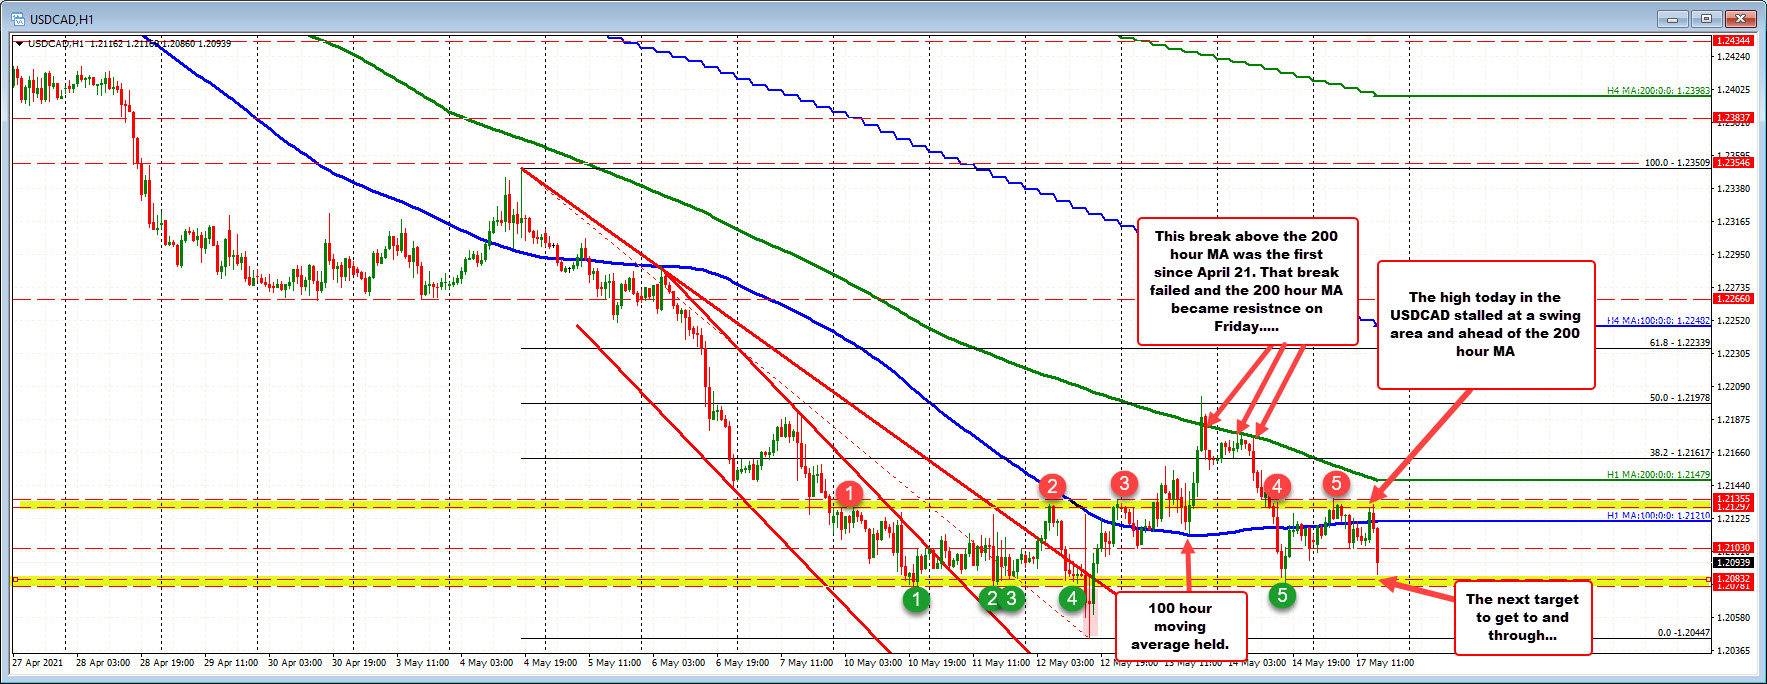 USDCAD falls to a new session low